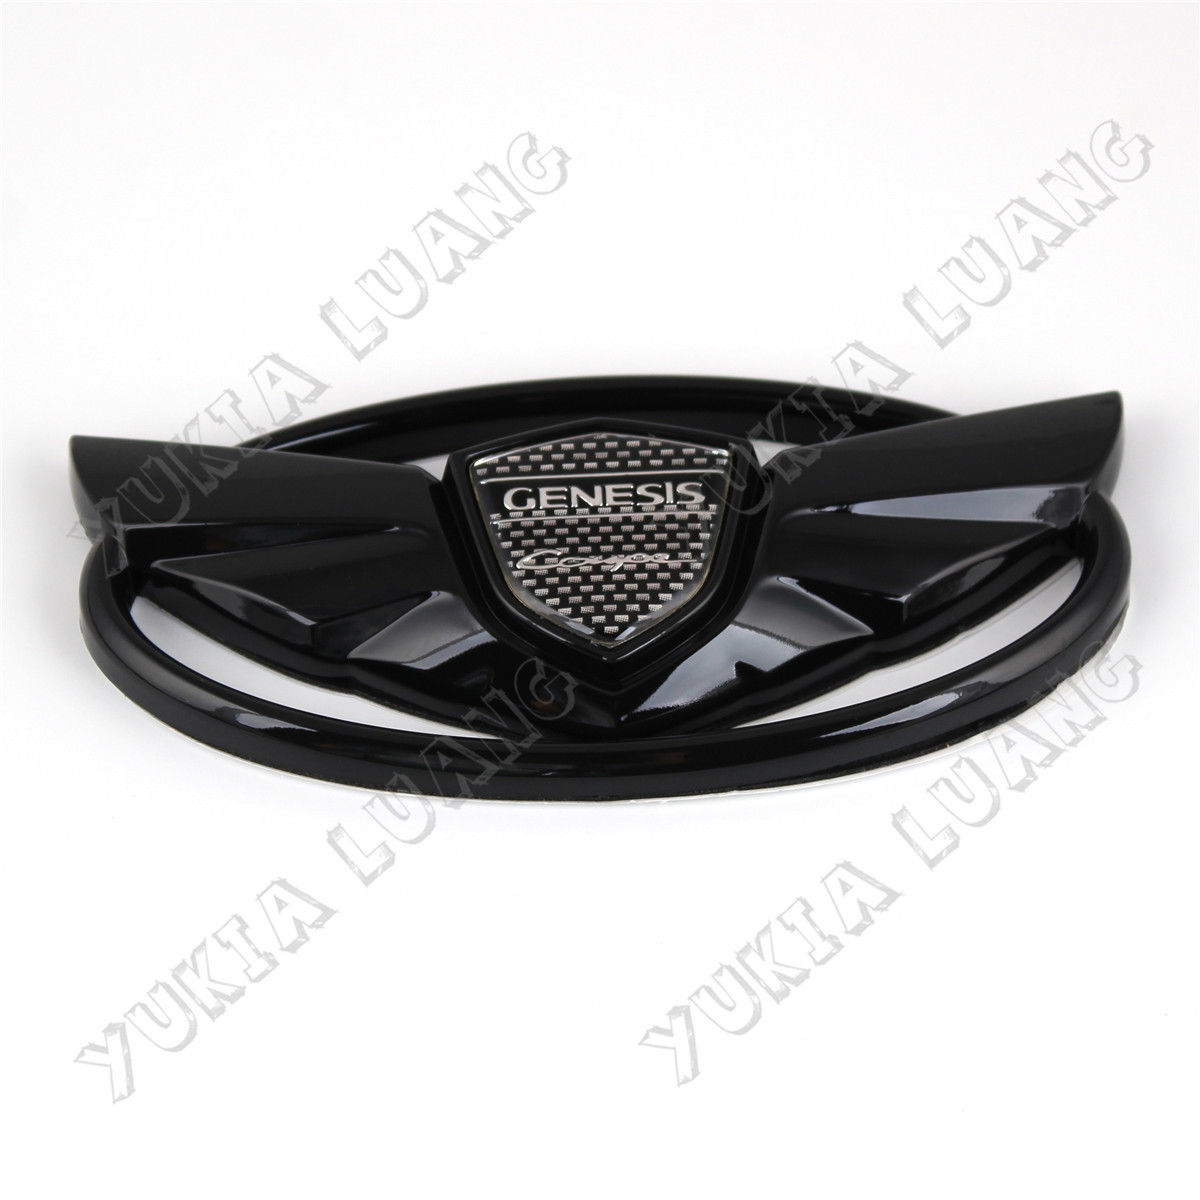 Black Wing Car Front Grille Emblem Sticker For Genesis Coupe 2010